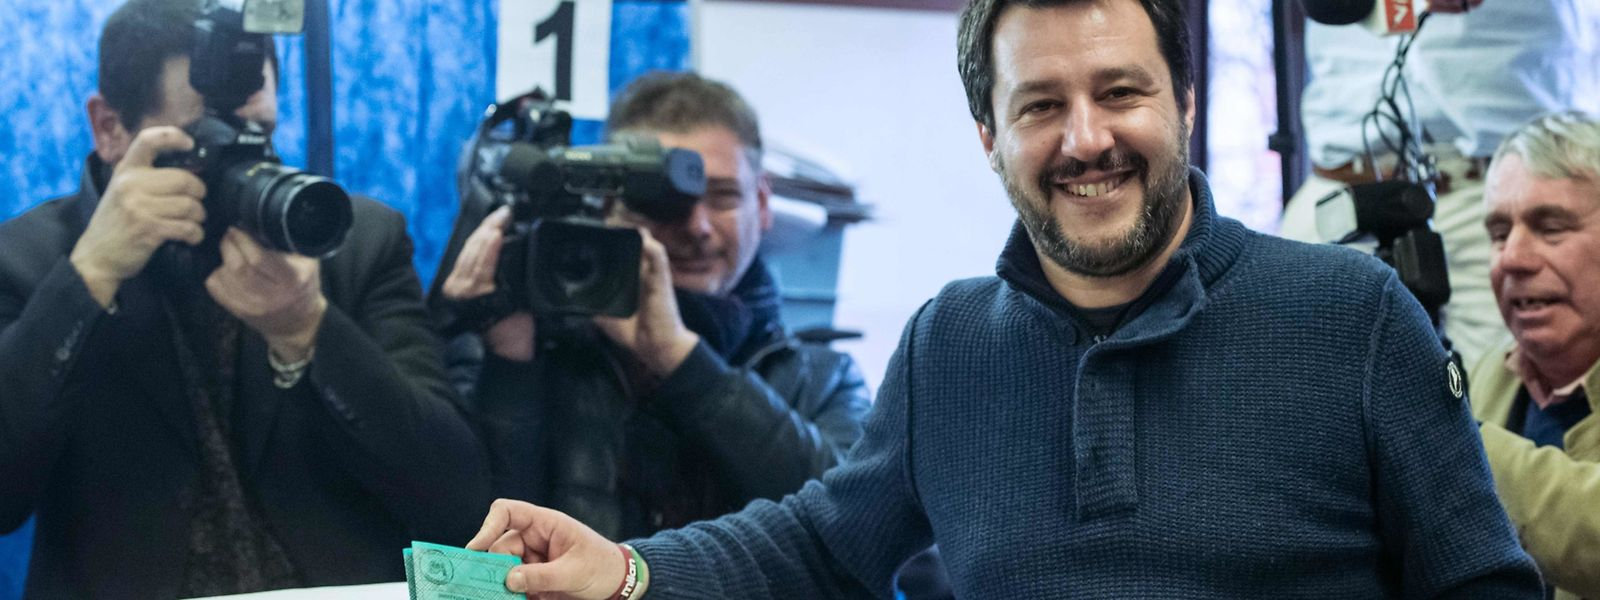 Lega Nord far right party leader Matteo Salvini votes for general elections on March 4, 2018 at a polling station in Milan.  Italians vote today in one of the country's most uncertain elections, with far-right and populist parties expected to make major gains and Silvio Berlusconi set to play a leading role. / AFP PHOTO / Piero CRUCIATTI